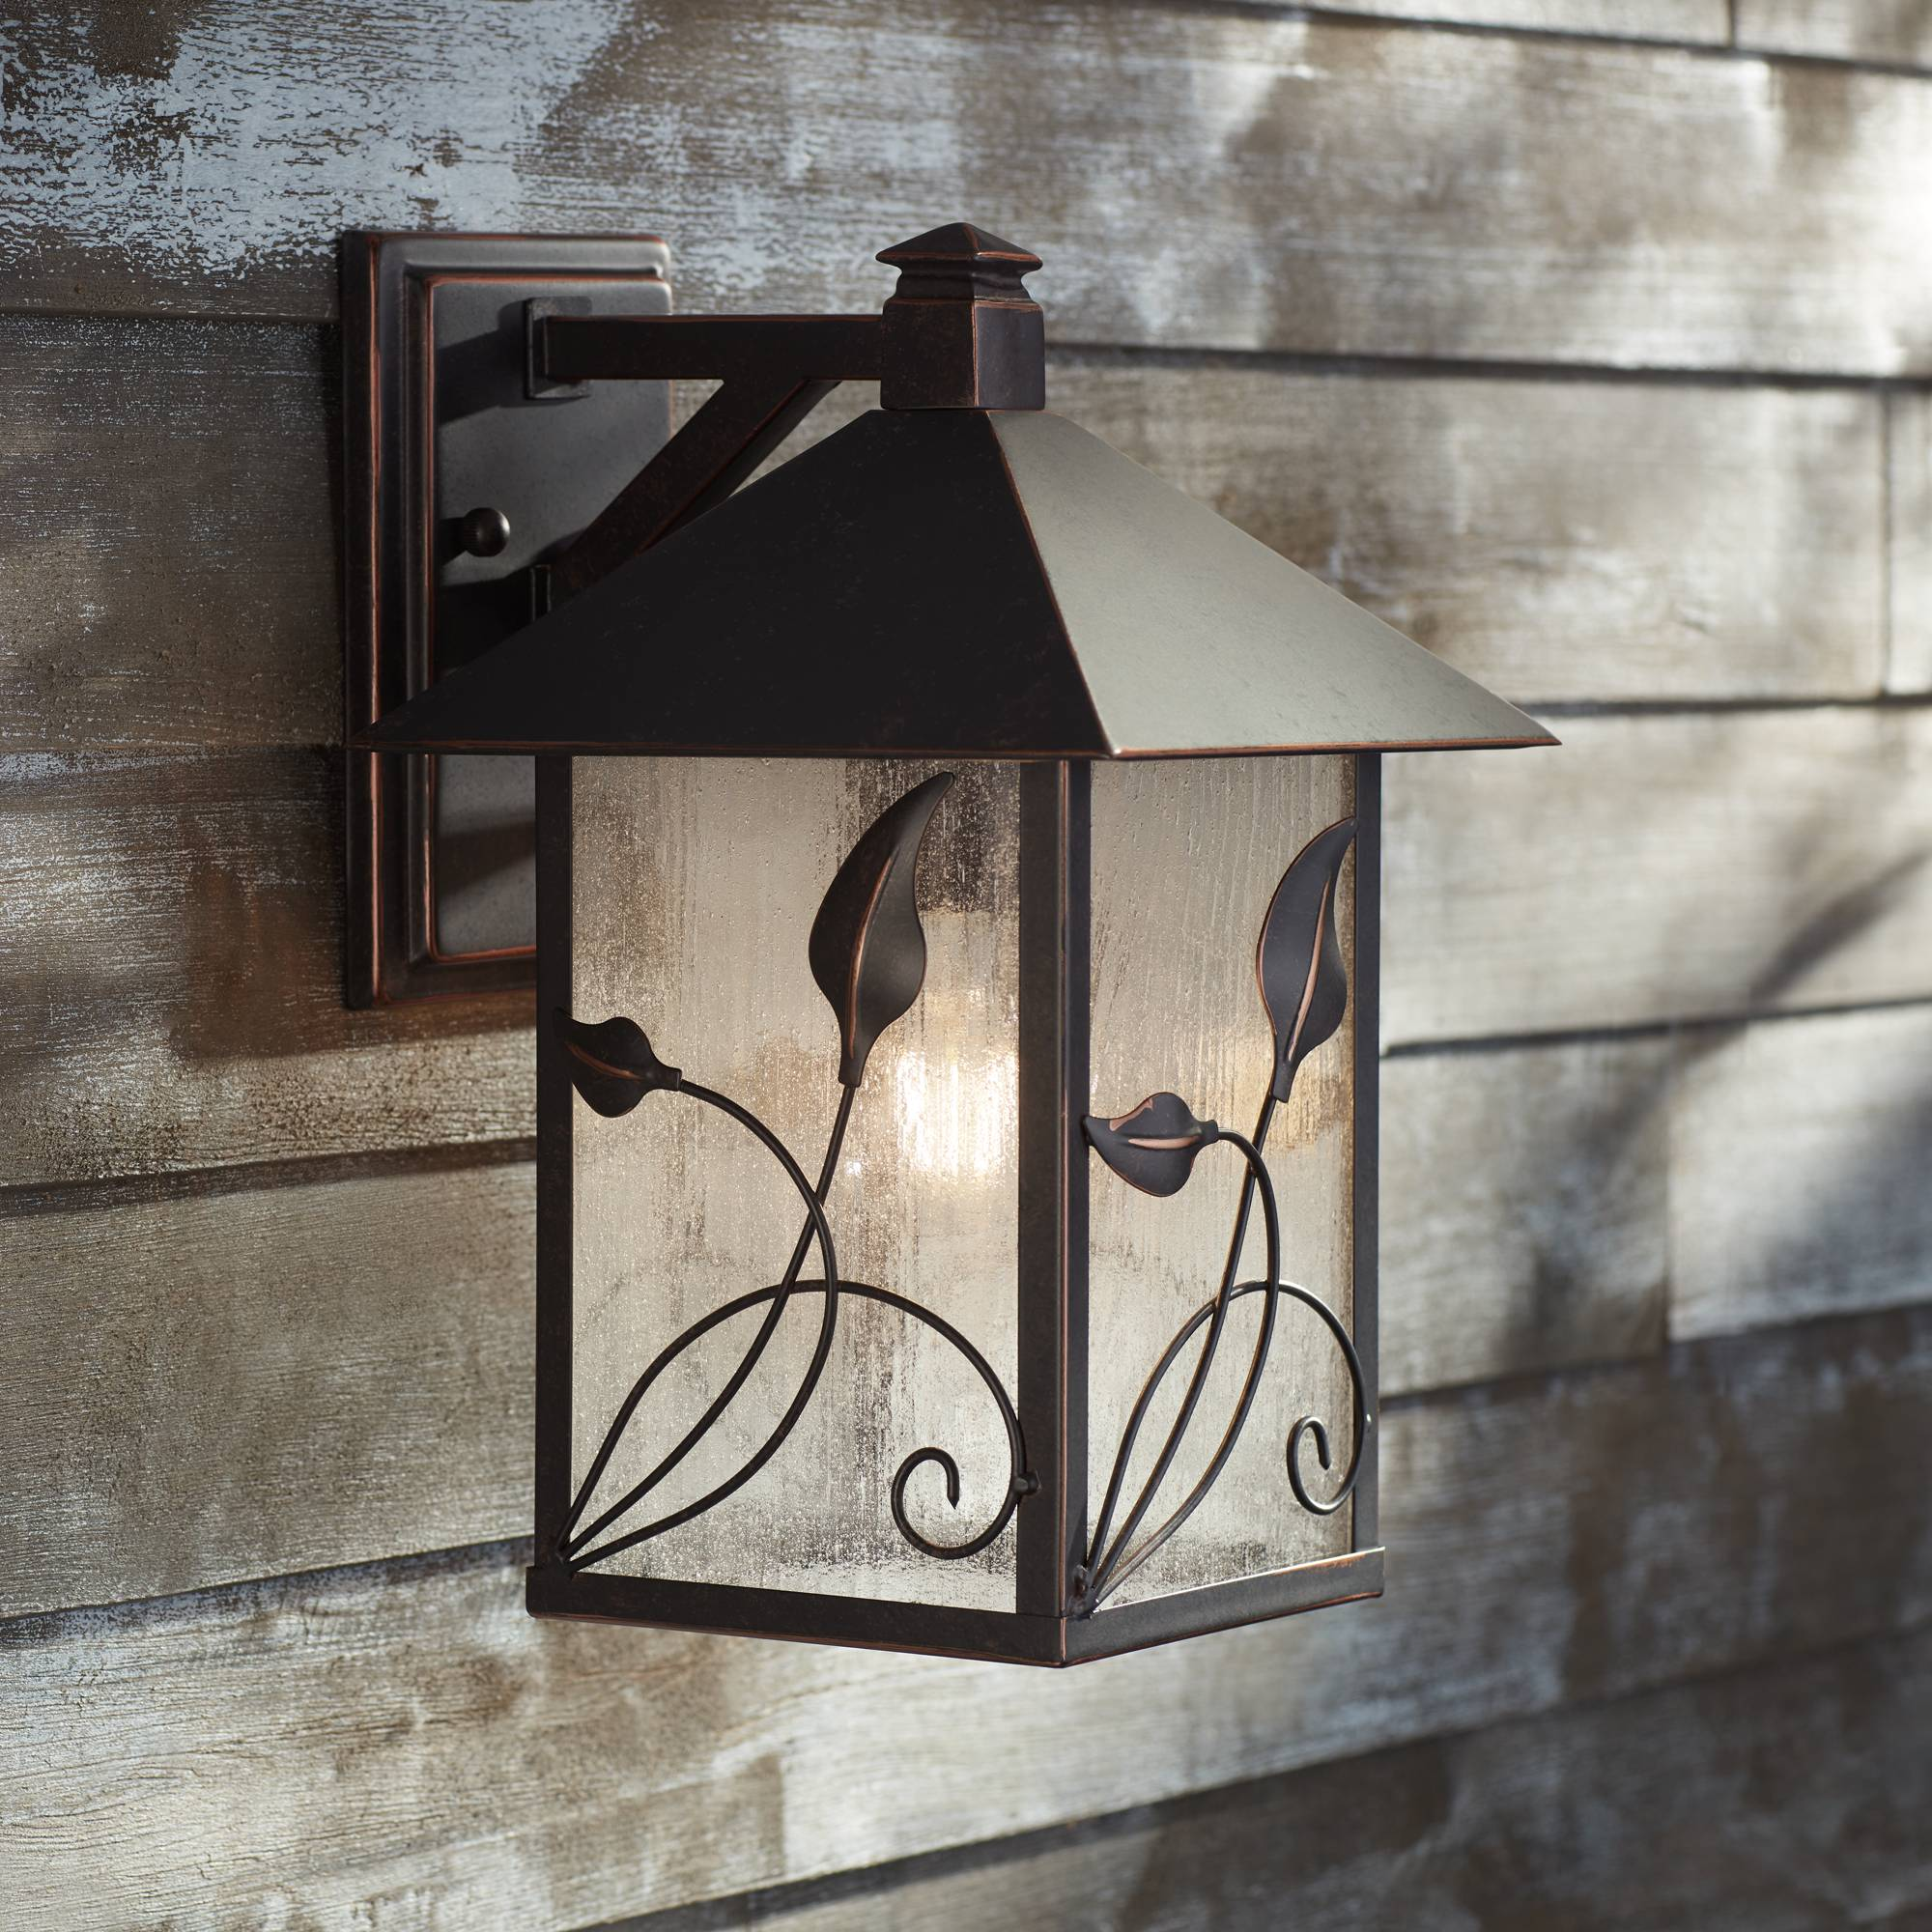 French garden 12 1 2 high outdoor wall light